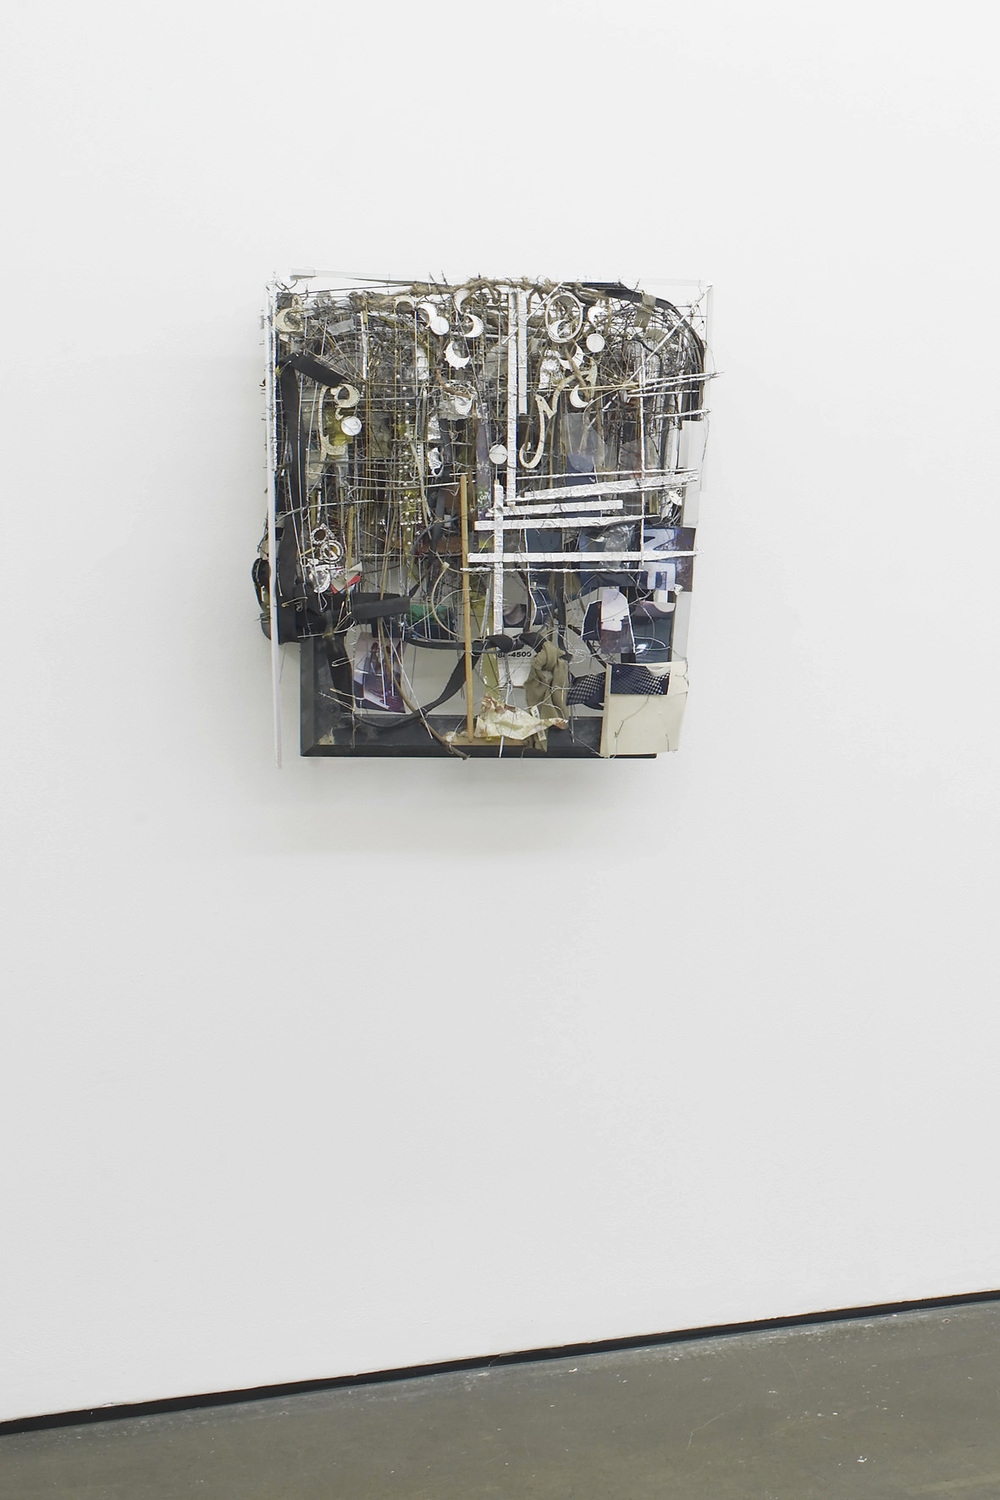 Robert Bittenbender Passion Avenue 2015 Wood, steel, photographs, aluminium, plastic, acrylic glass, jewelry, rubber, rope, paper, clothespins, zipties, metal wires,chains, assorted tubes, bottles 80 × 67 × 22 cm / 31.5 × 26.3 × 8.6 in HS12-RB5458S